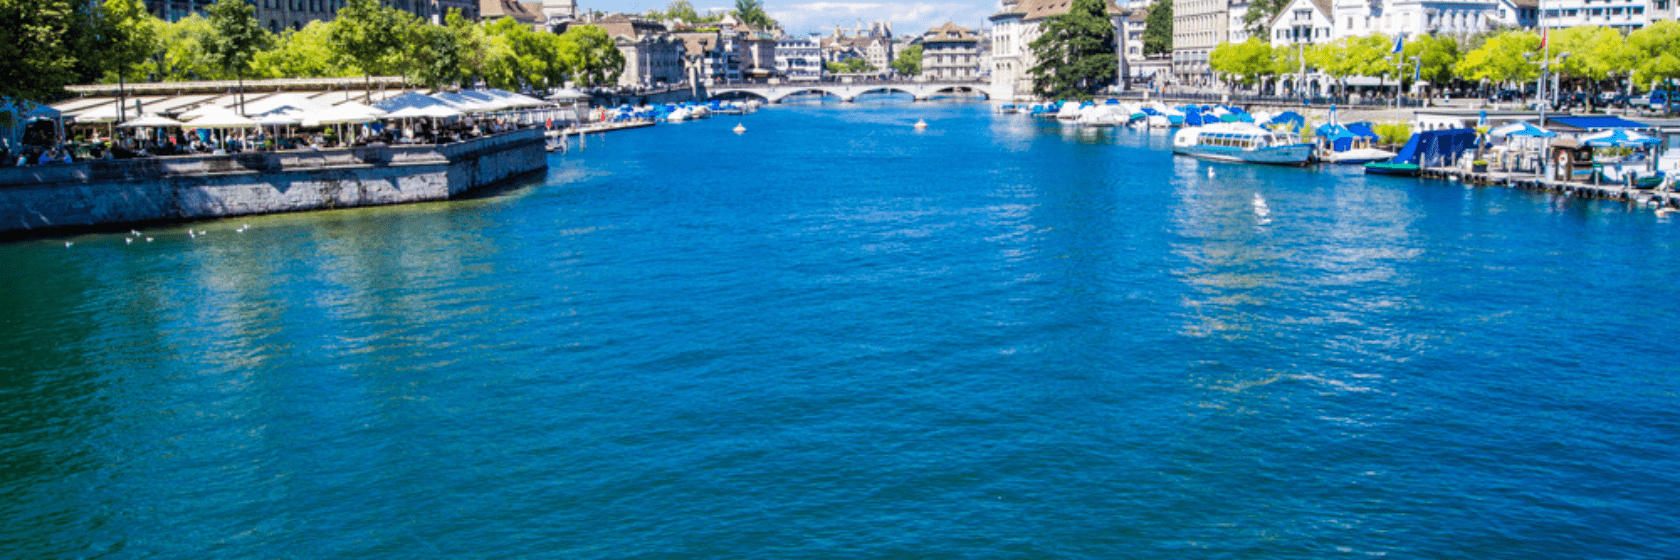 zurich as seen from the river